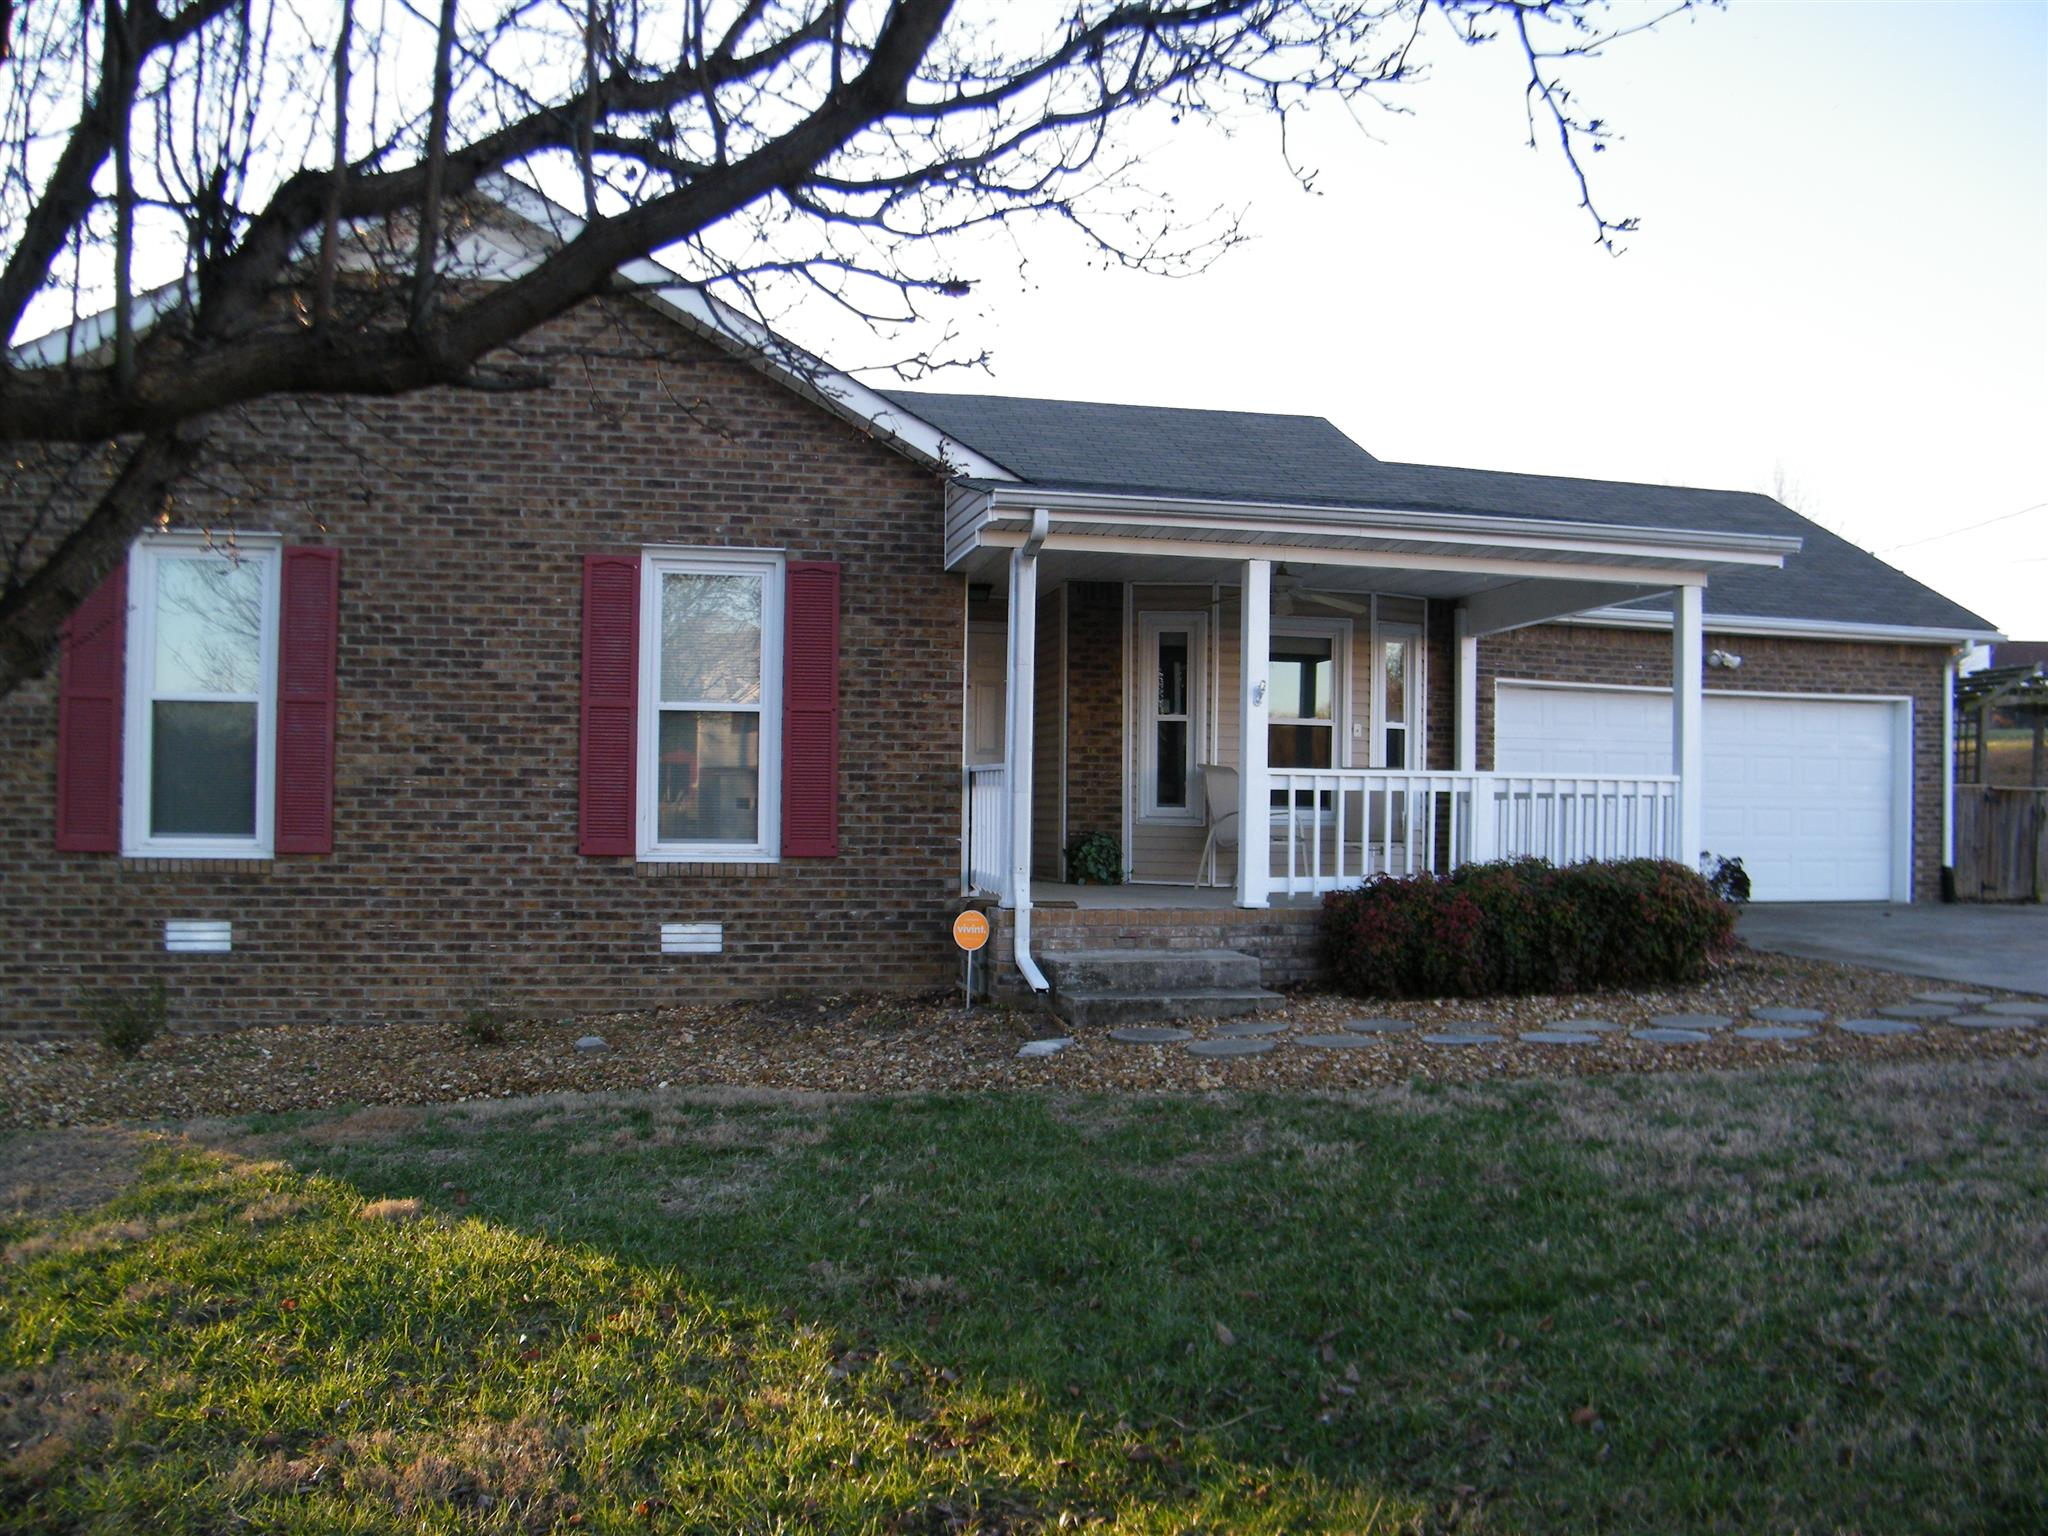 2460 Artie Manning Rd, Clarksville in Montgomery County County, TN 37042 Home for Sale